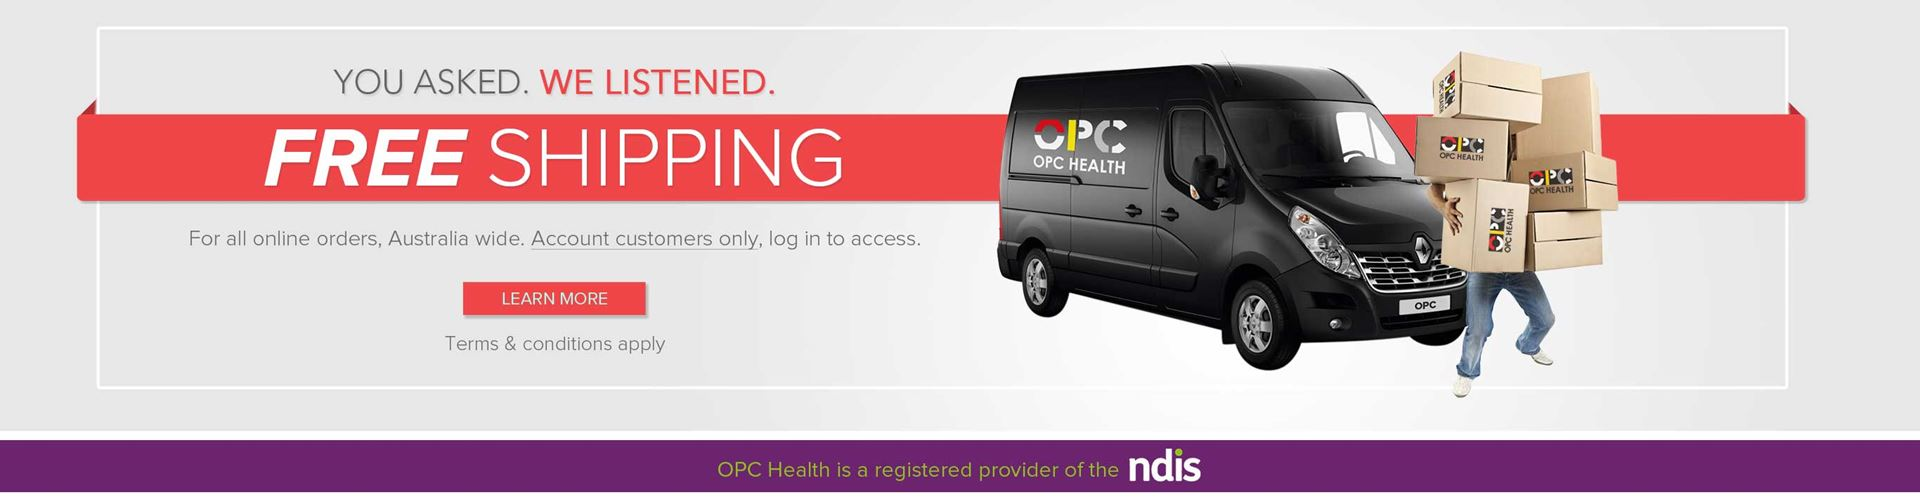 Free Shipping with OPC Health